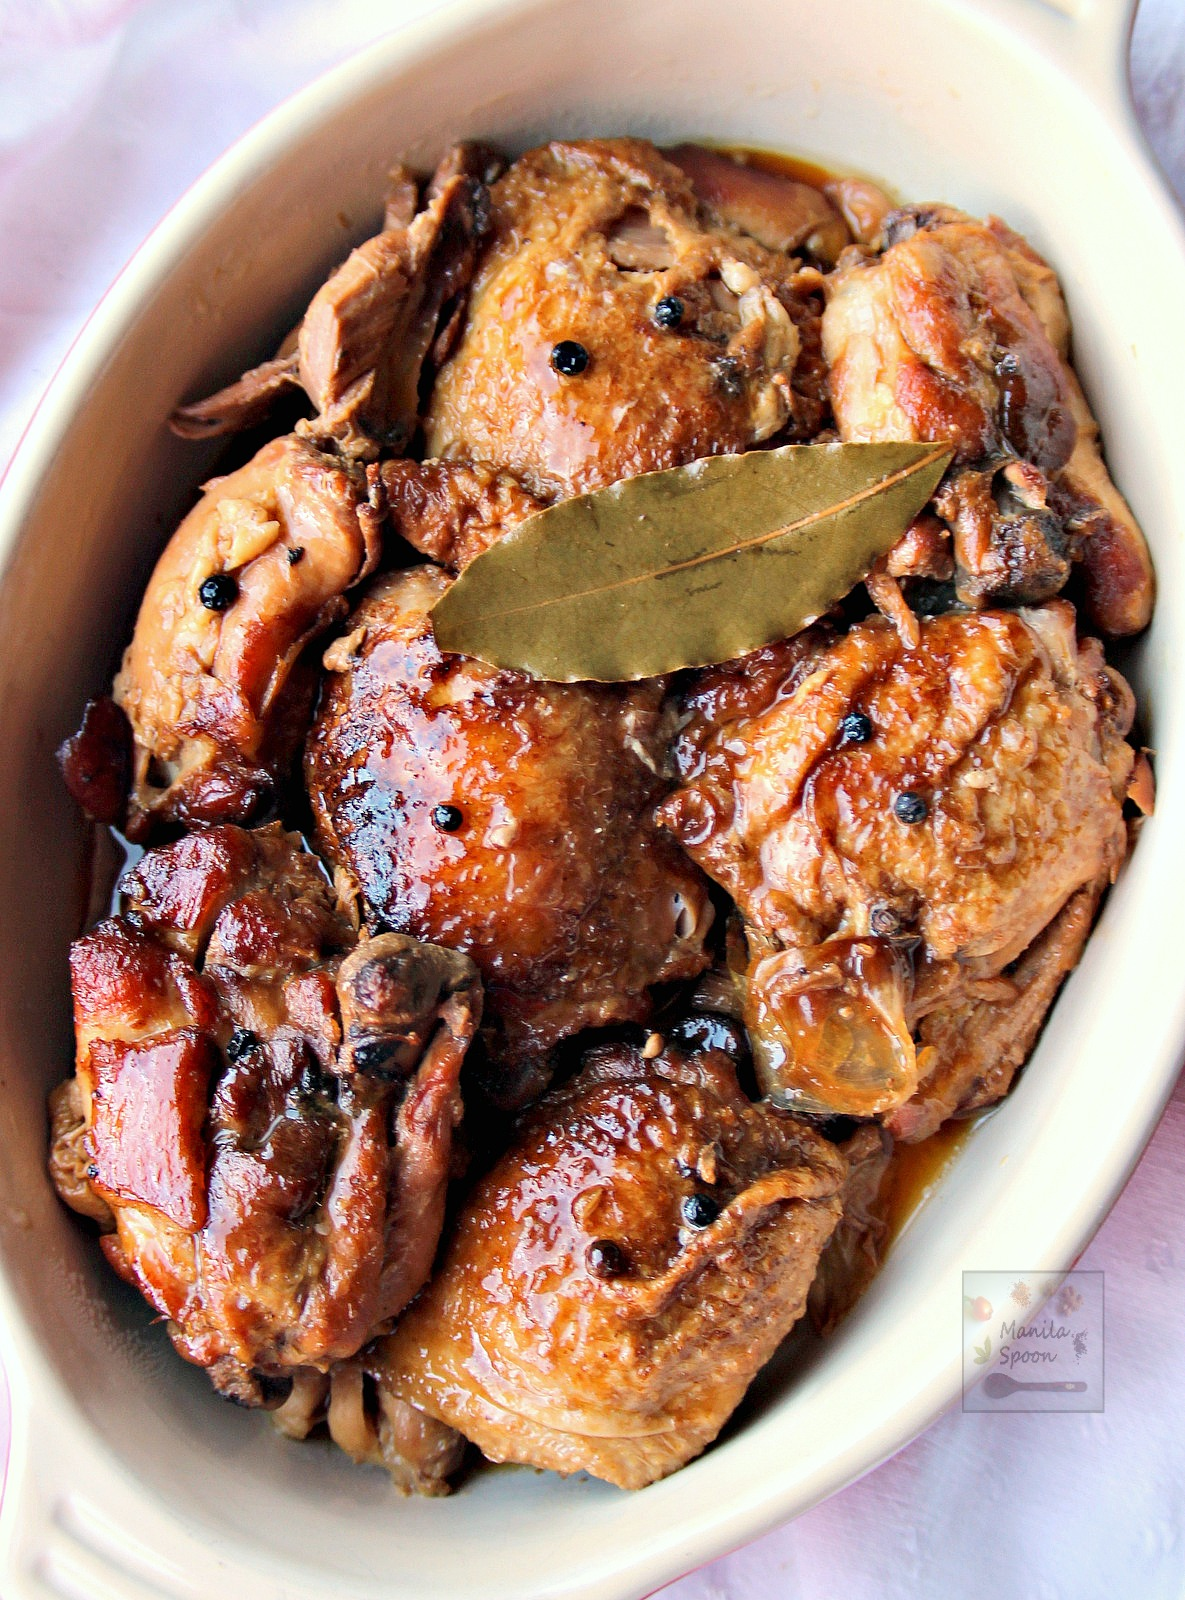 Chicken slowly braised in vinegar, soy sauce, garlic and bay leaves ...